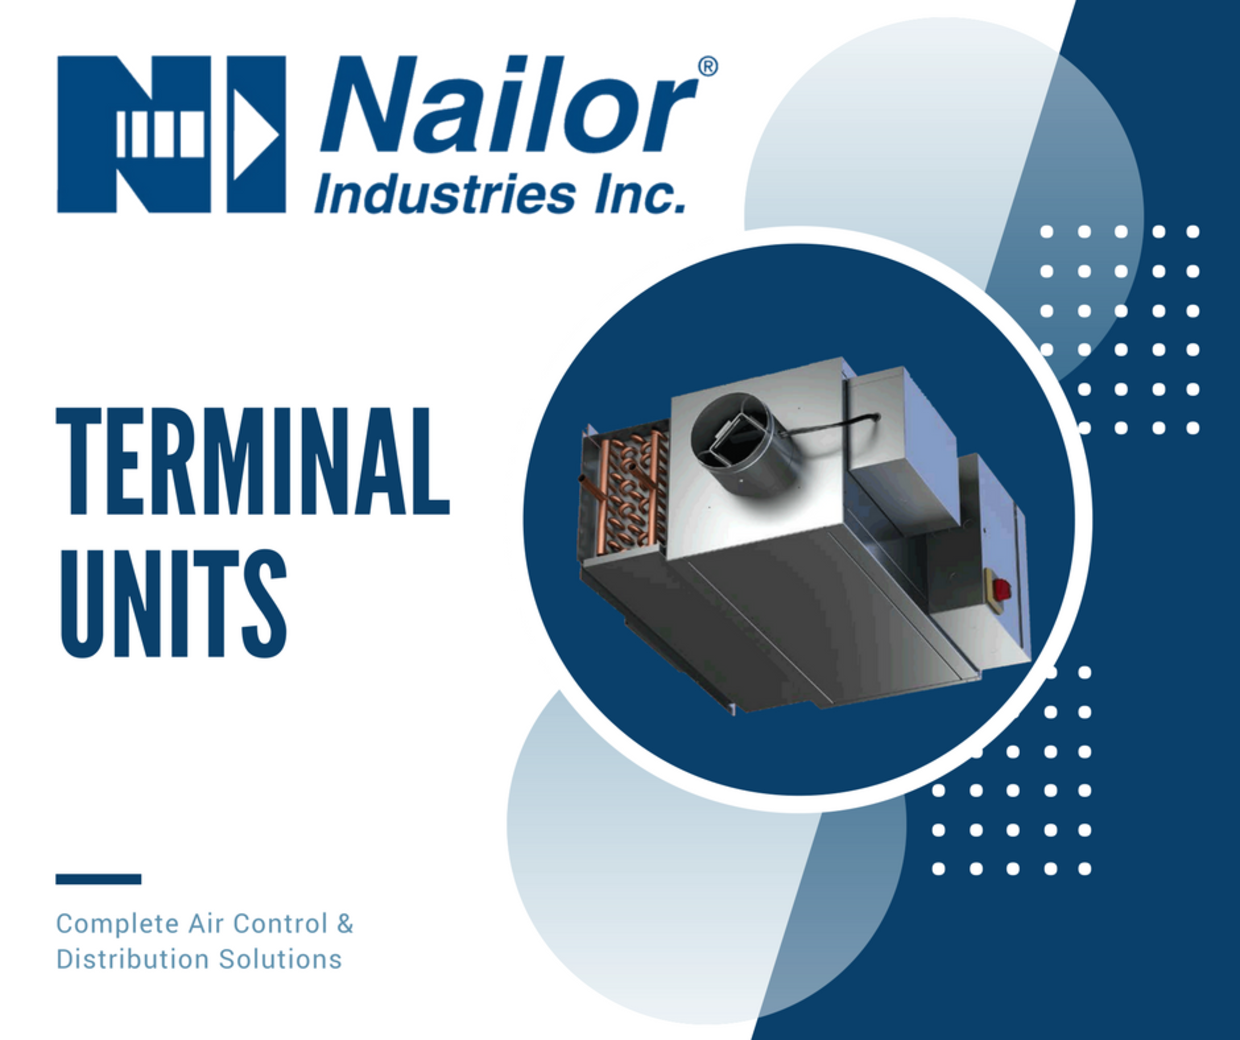 Nailor Terminal Units - Complete Air Control & Distribution Solutions